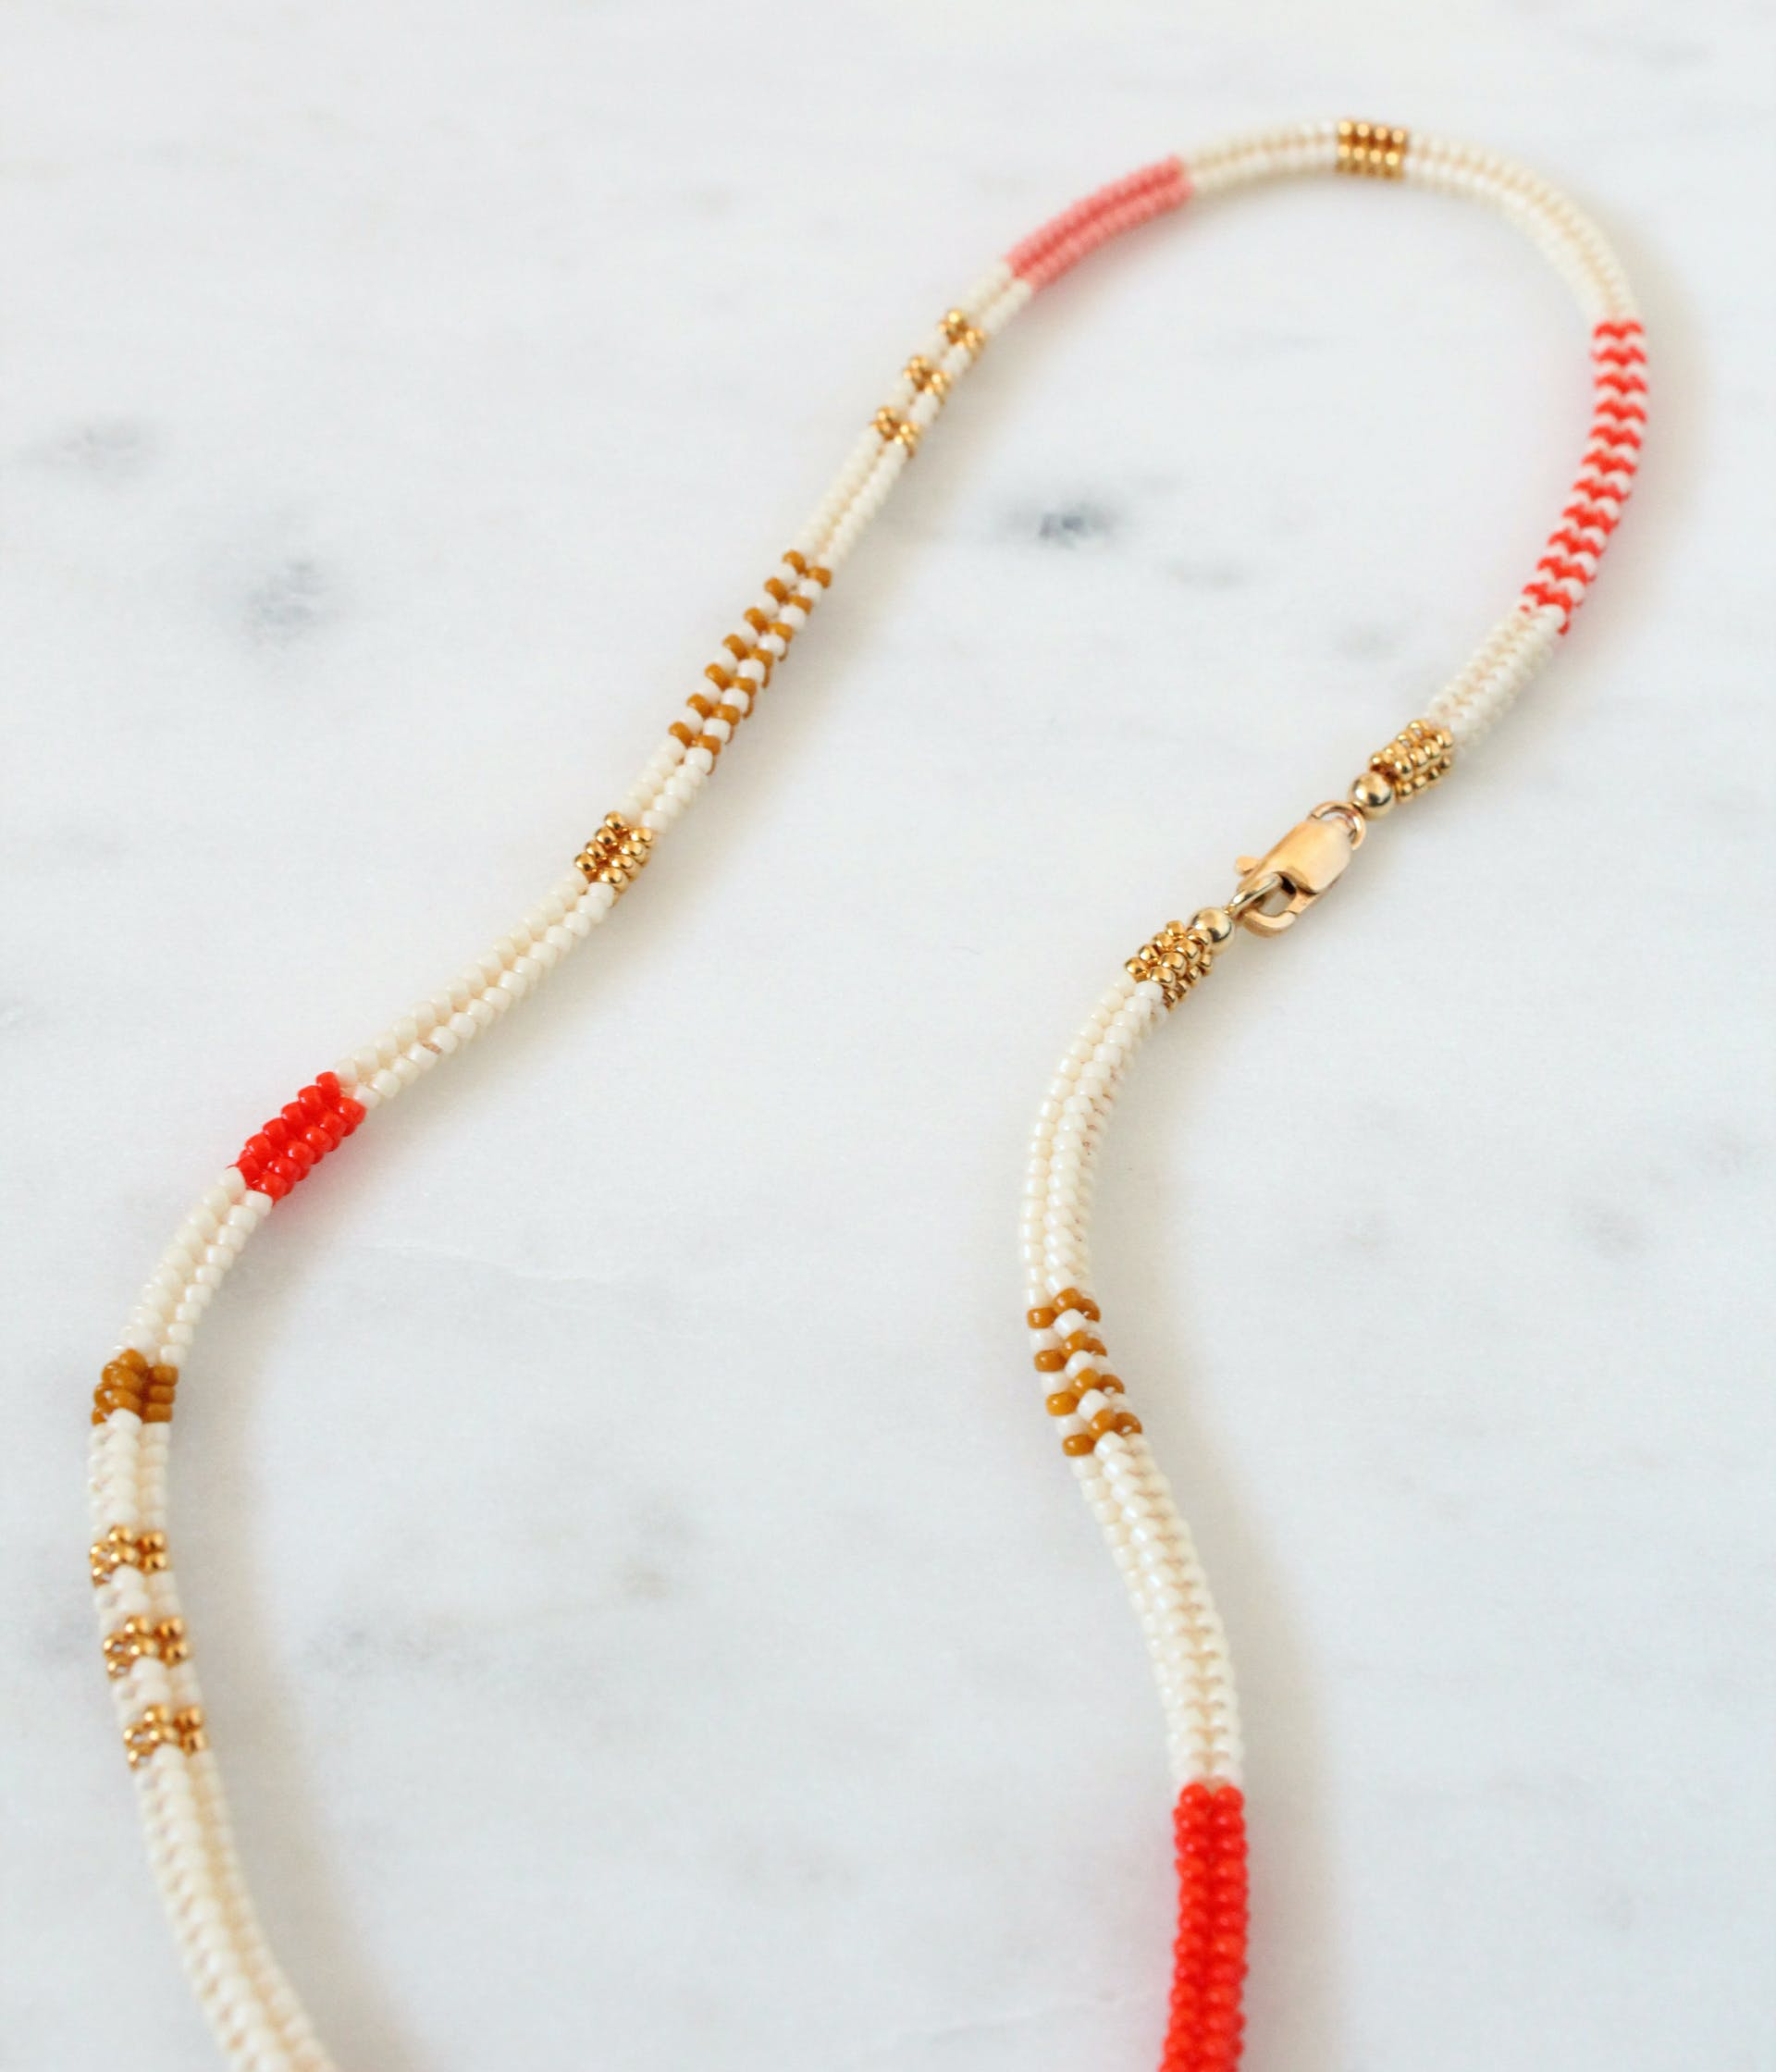 Handcrafted necklace made from tiny glass beads woven together with needle and thread